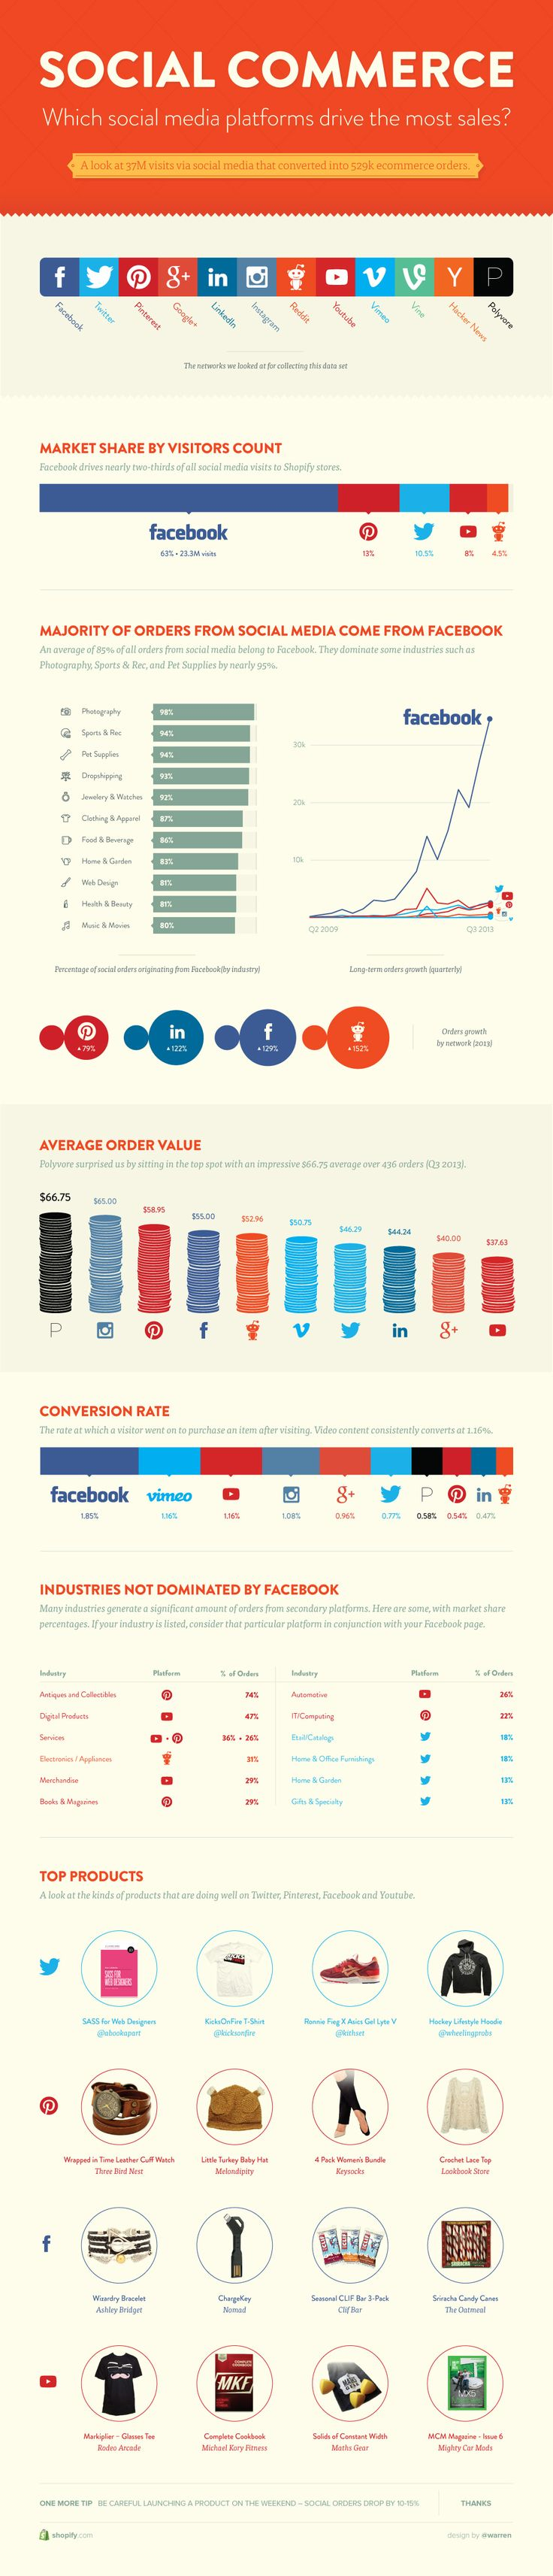 Social Commerce: Which Social Media Platforms Drive The Most Sales? | Shopify [Infographic]